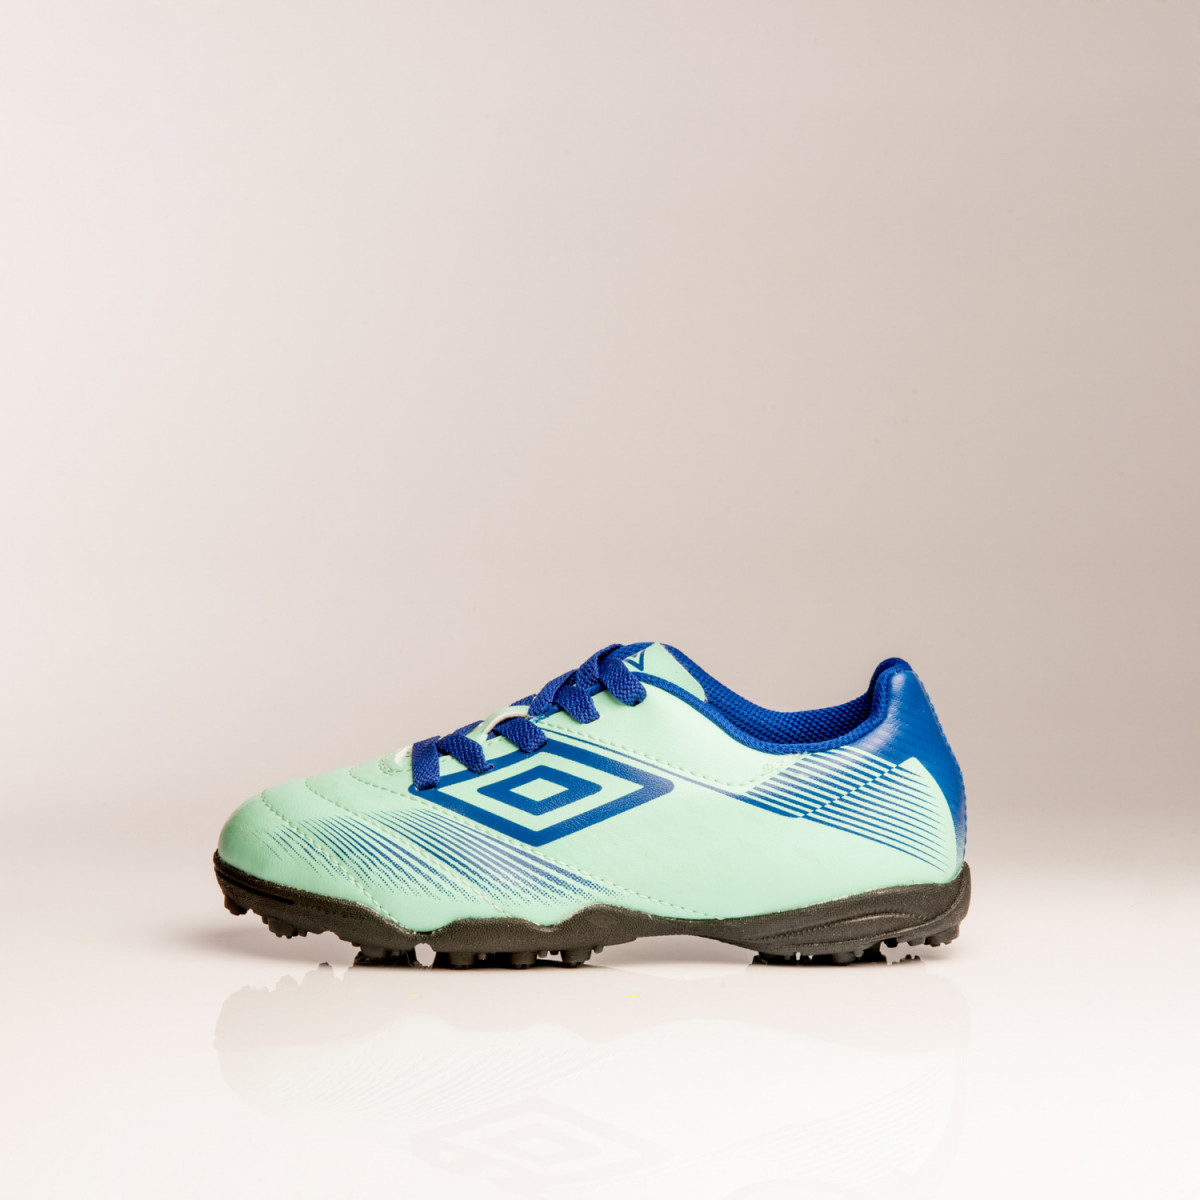 BOTINES UMBRO SOCIETY GRASS JR AQUA7